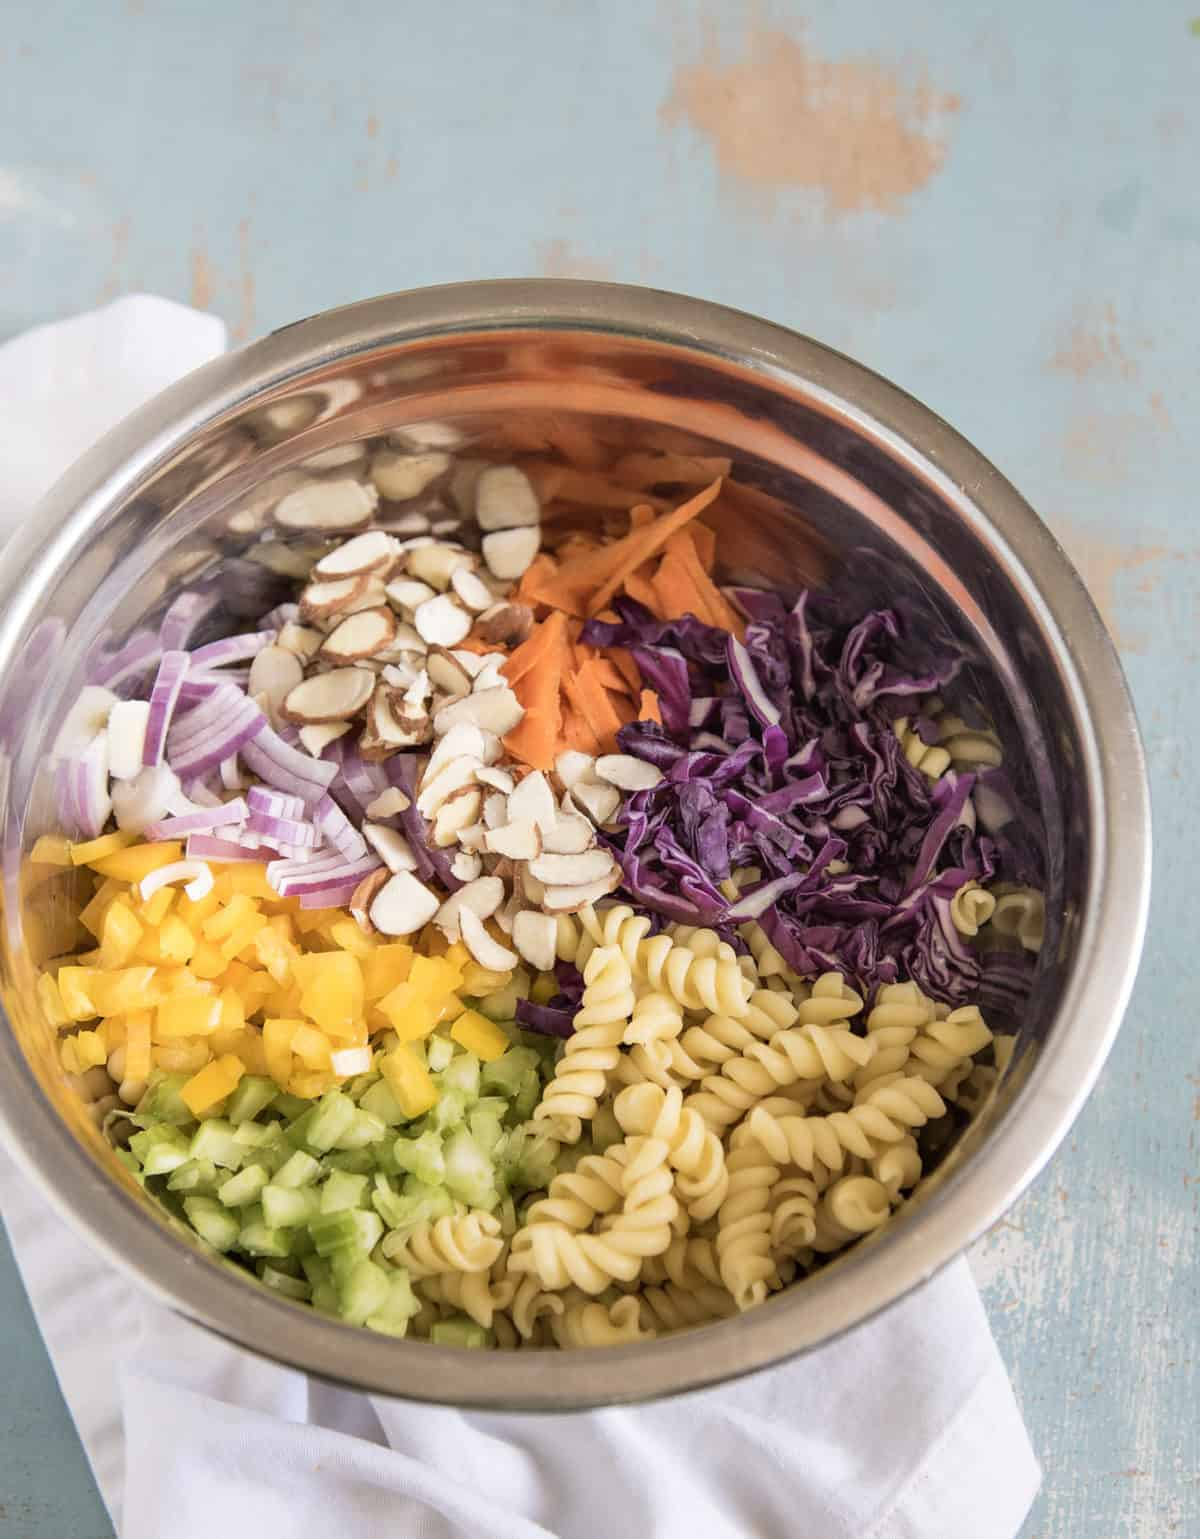 Asian Pasta Salad is made with chopped vegetables, pasta, a simple soy sauce dressing and it only takes about 20 minutes to make!